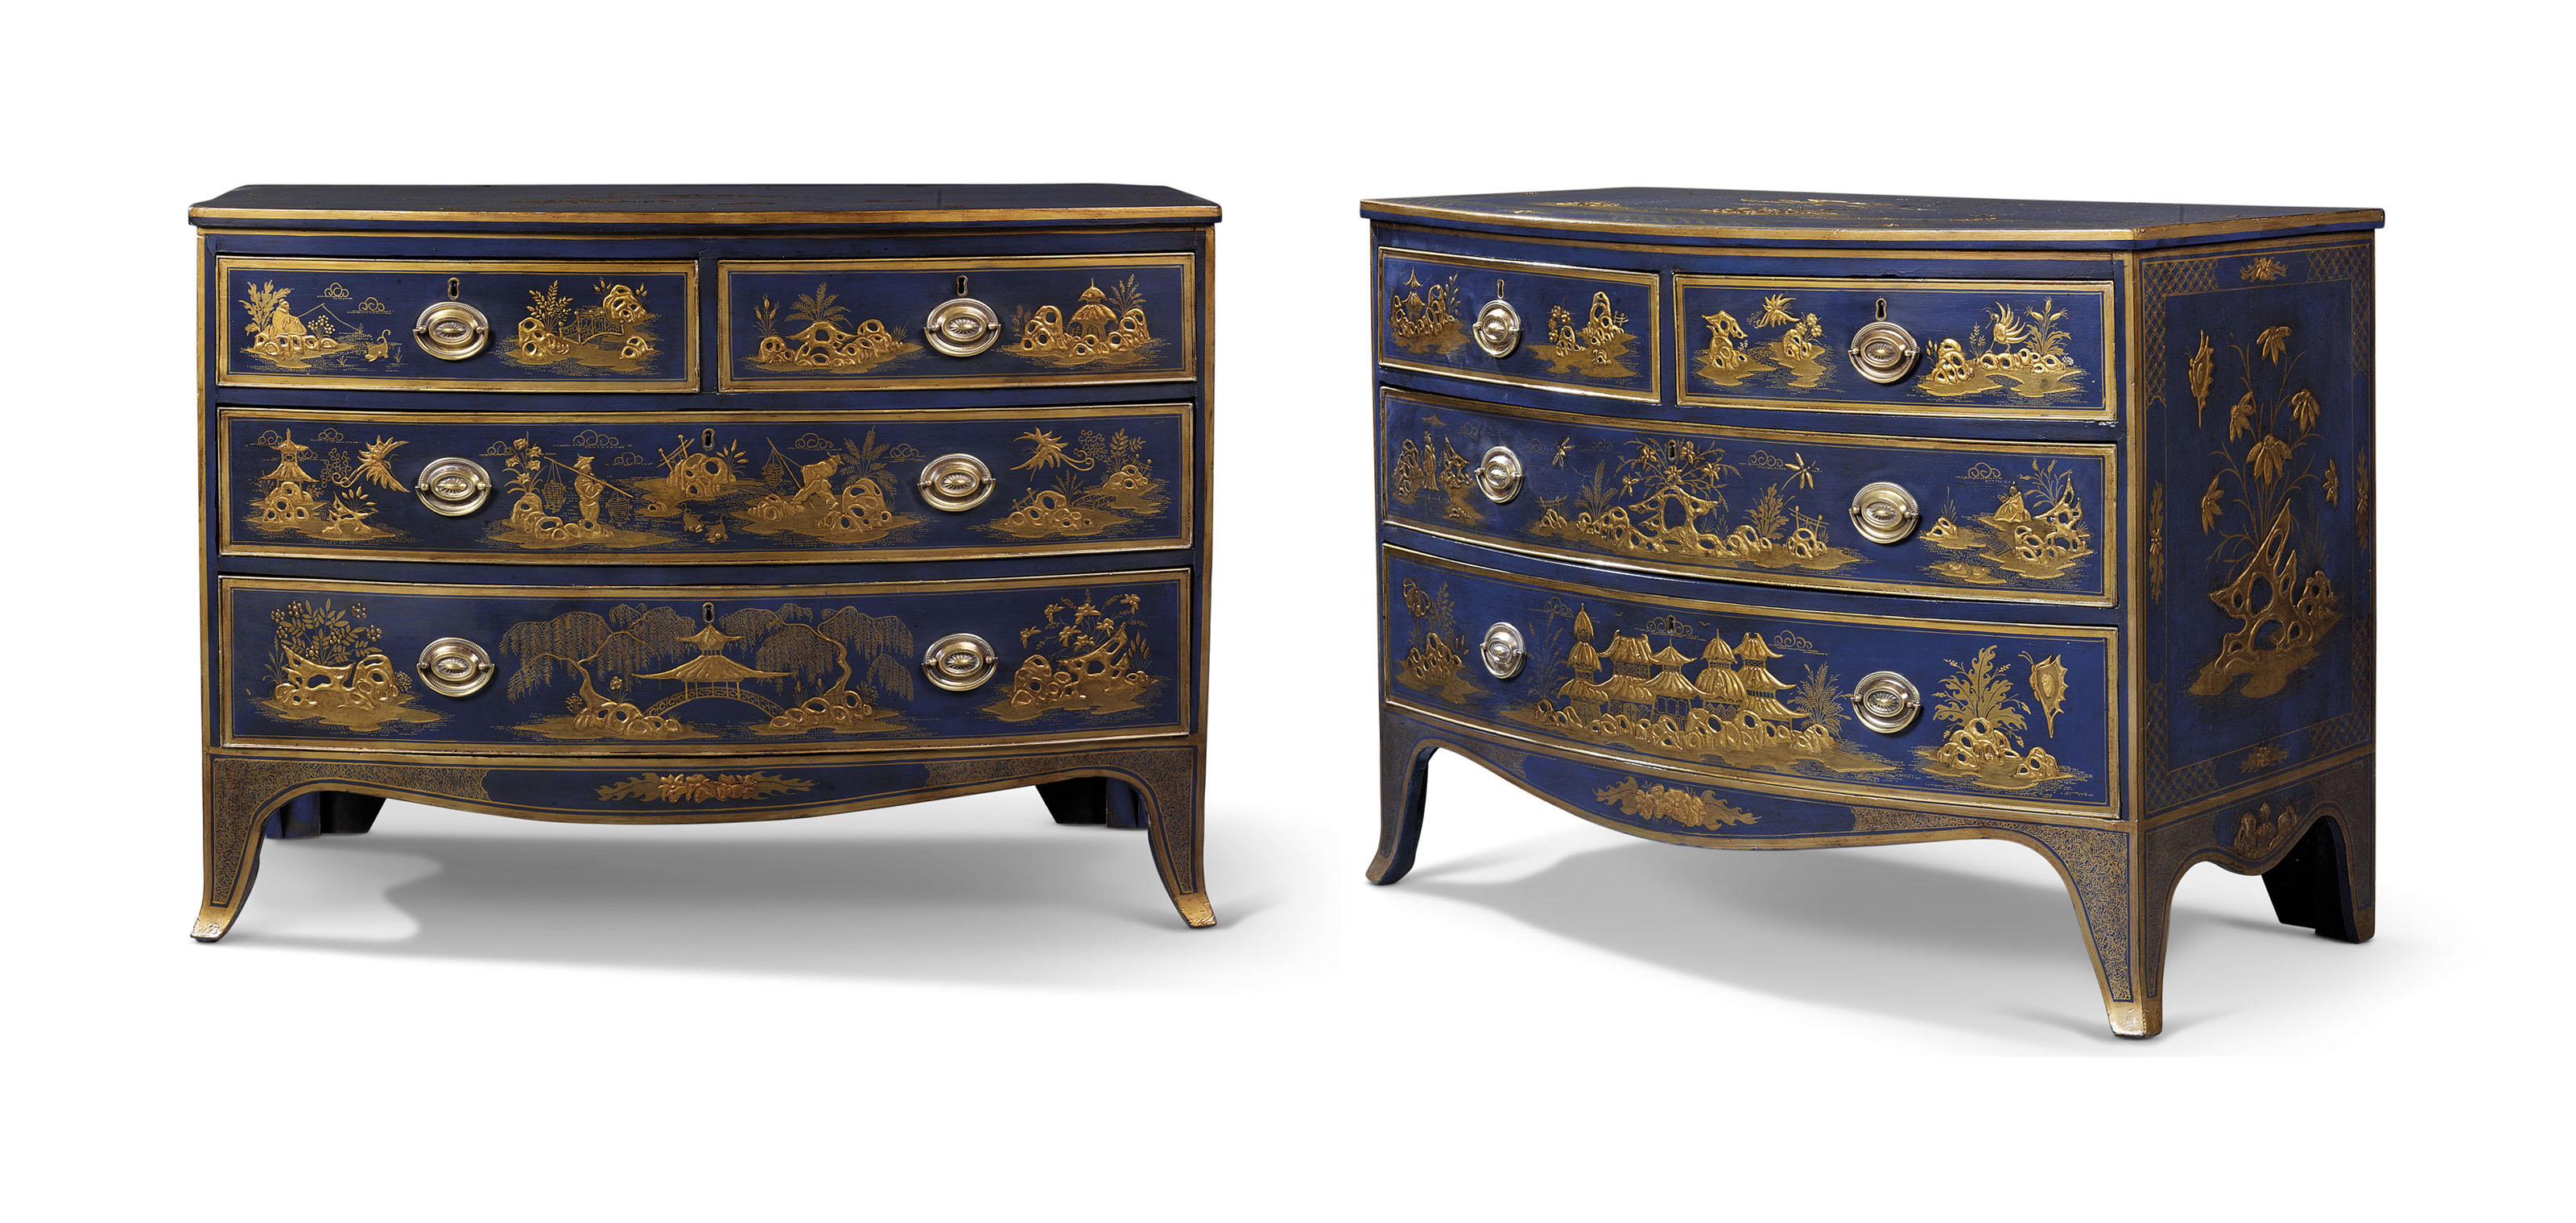 A PAIR OF BLUE AND GILT JAPANNED BOW-FRONTED CHESTS